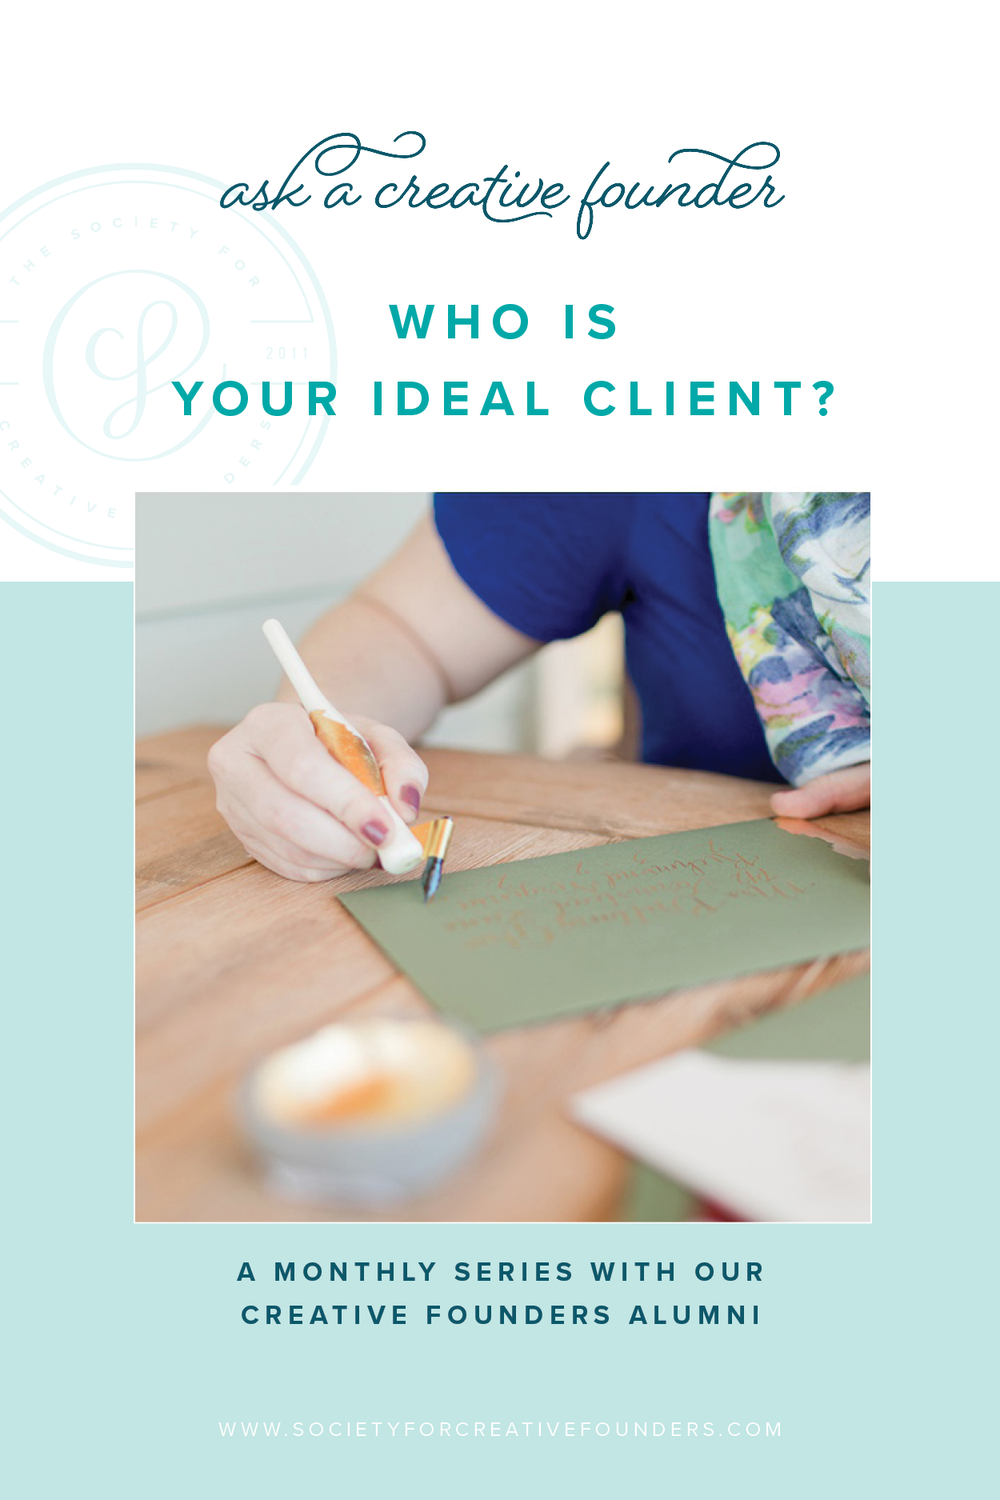 How to Find Your Ideal Client